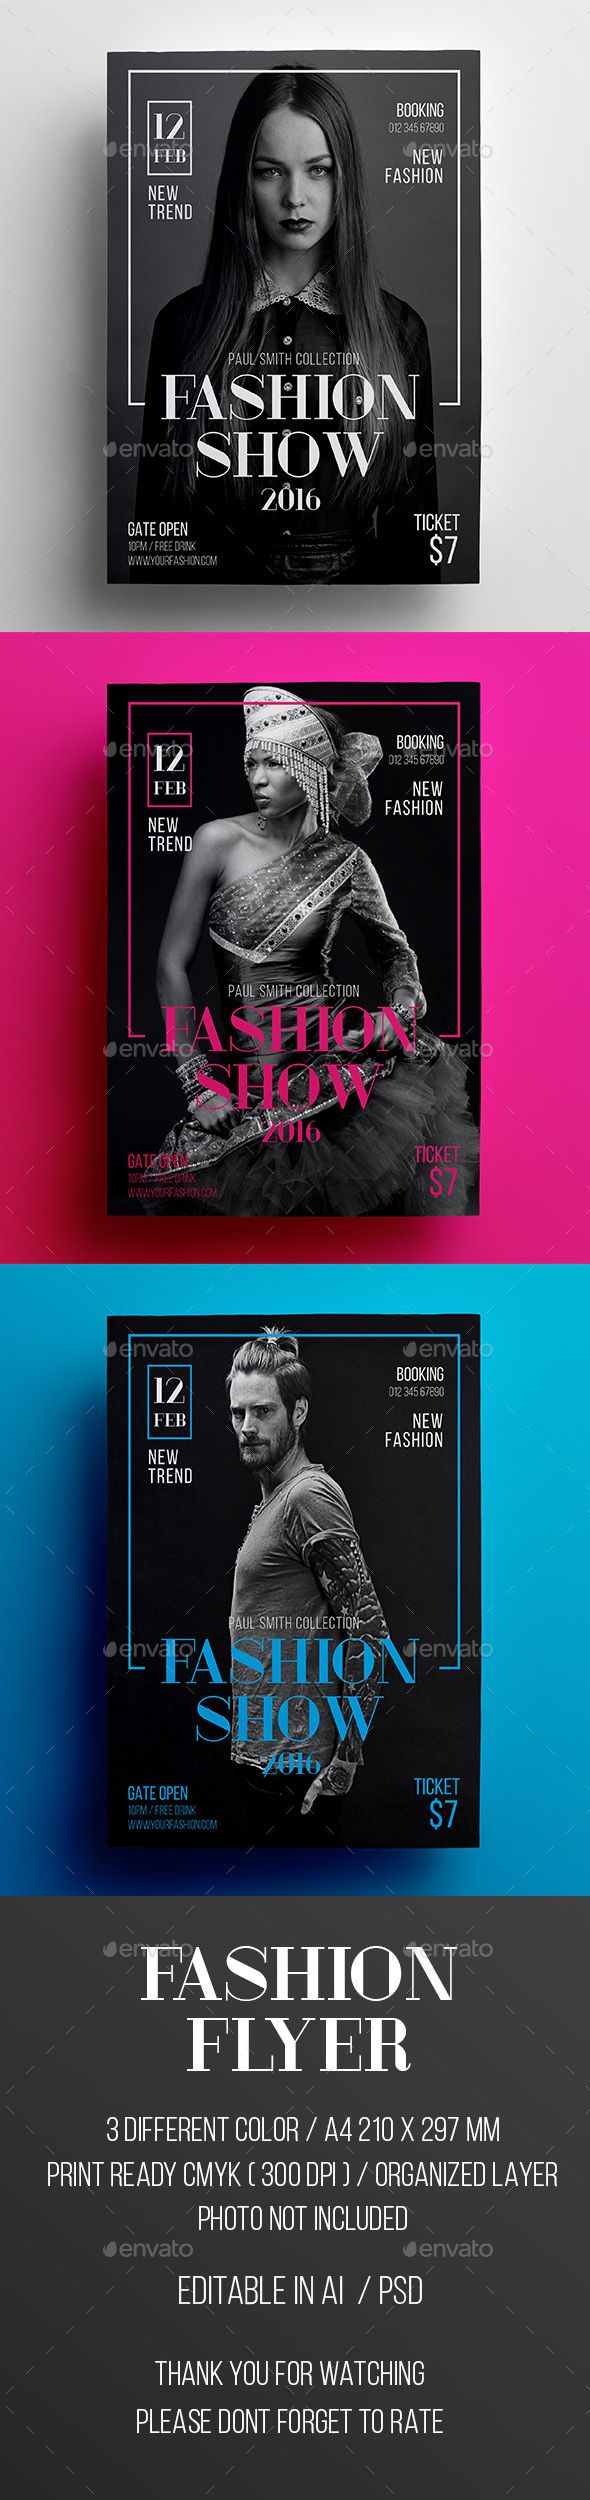 Poster design ideas pinterest - Fashion Show Flyer